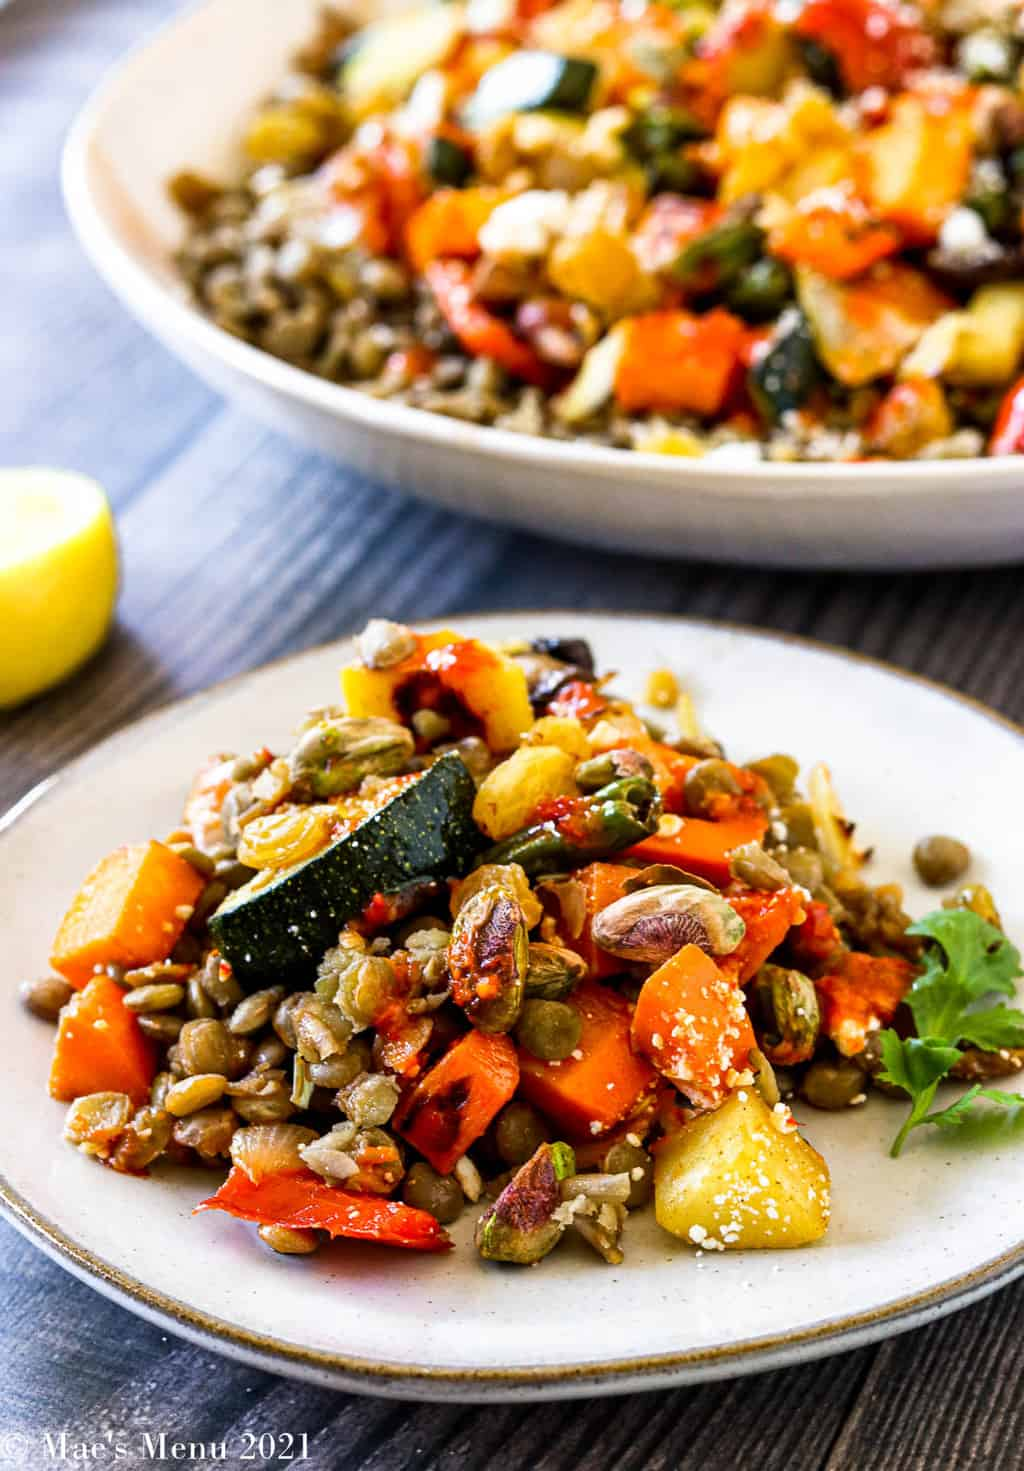 An up-close shot of a small dish of Moroccan roasted vegetable salad